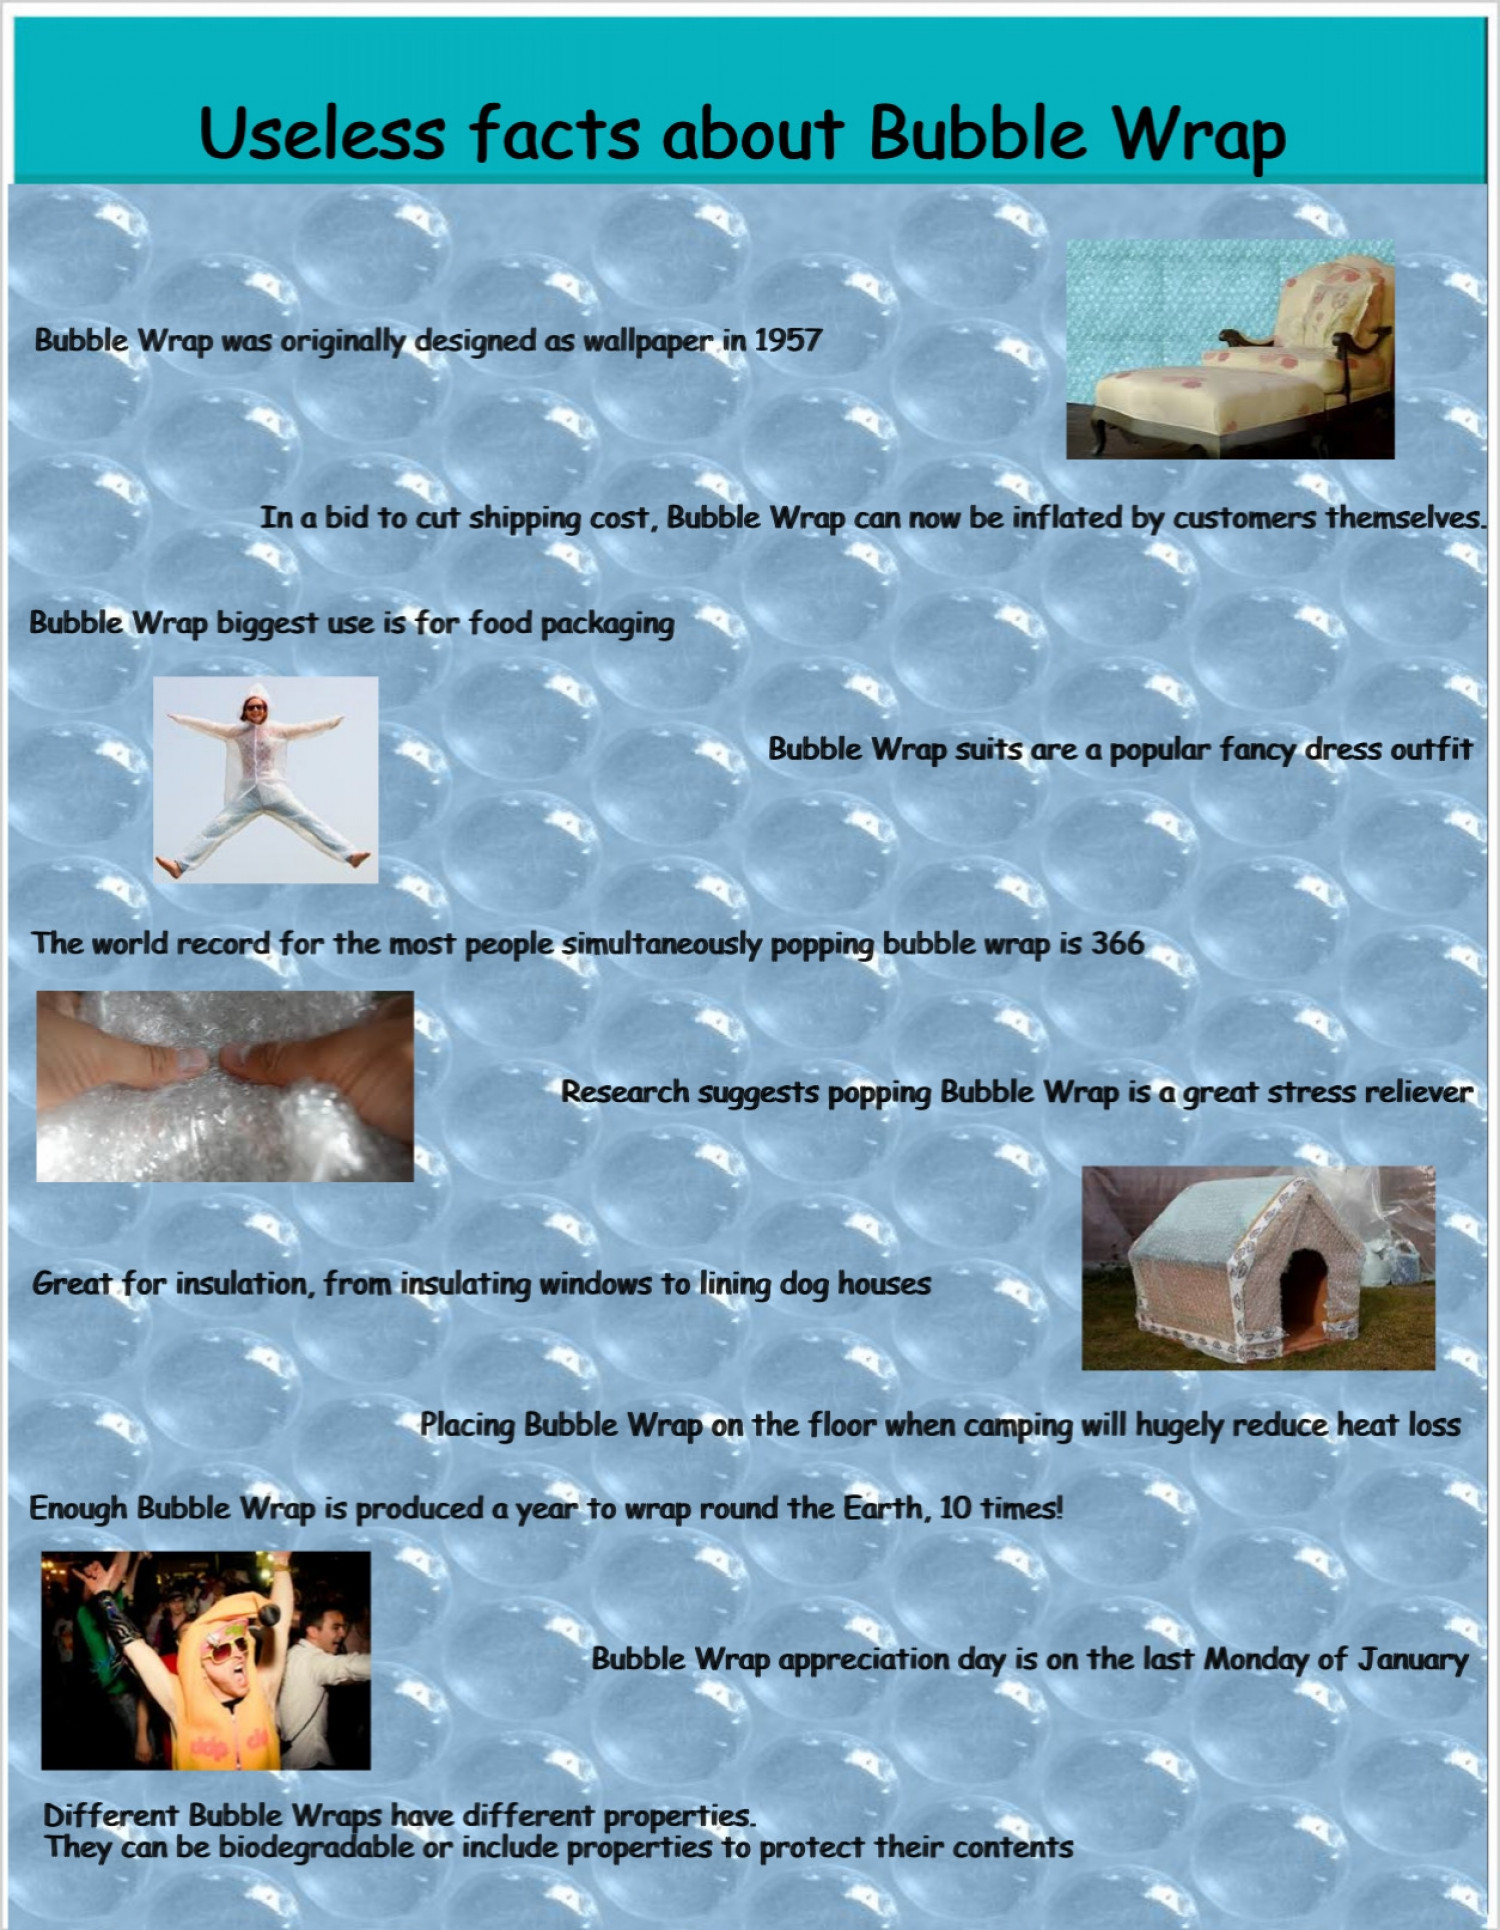 Facts about bubble wrap Infographic